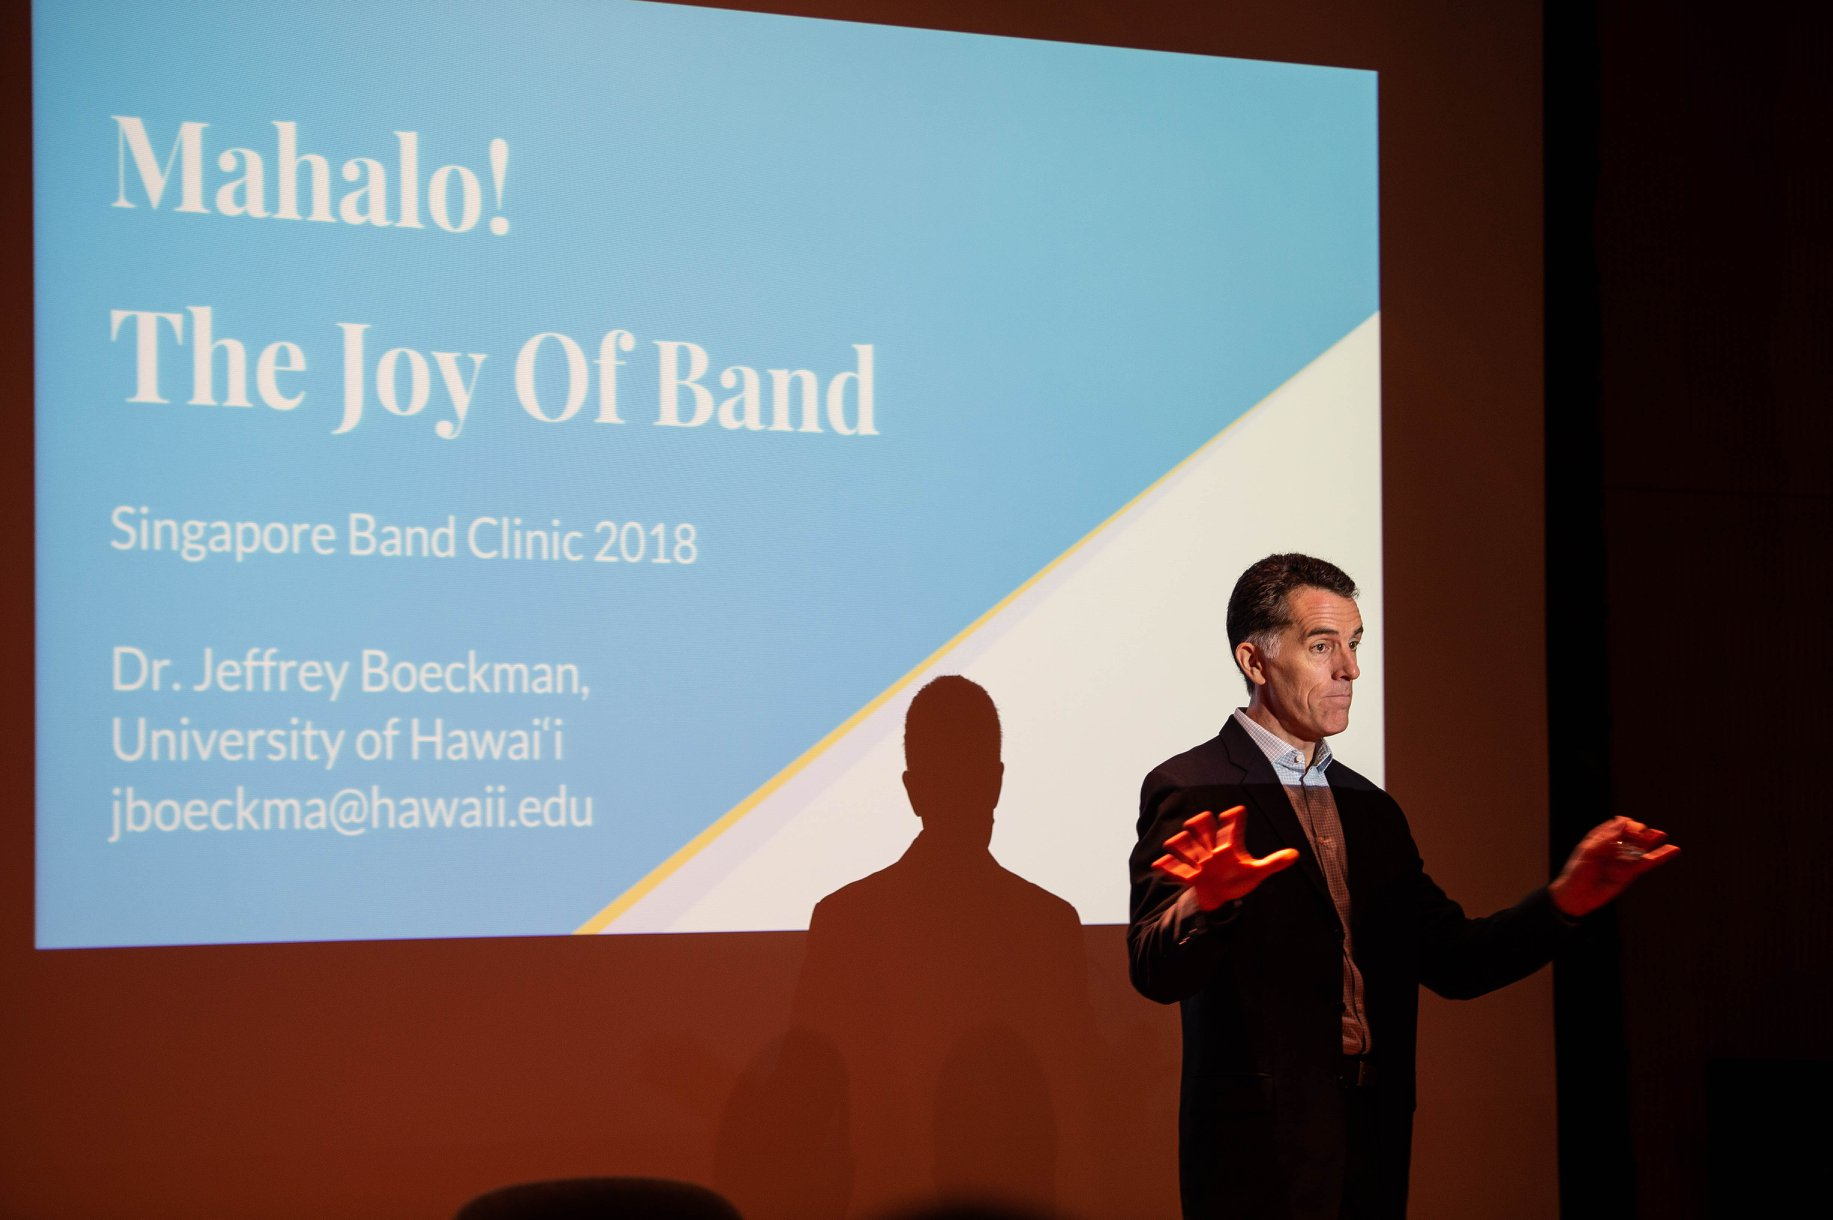 Conductor and educator Dr Jeffrey Boeckman was a keynote presenter at the Singapore Band Clinic. He also made a guest appearance to conduct the debut of the YST Wind Consort.